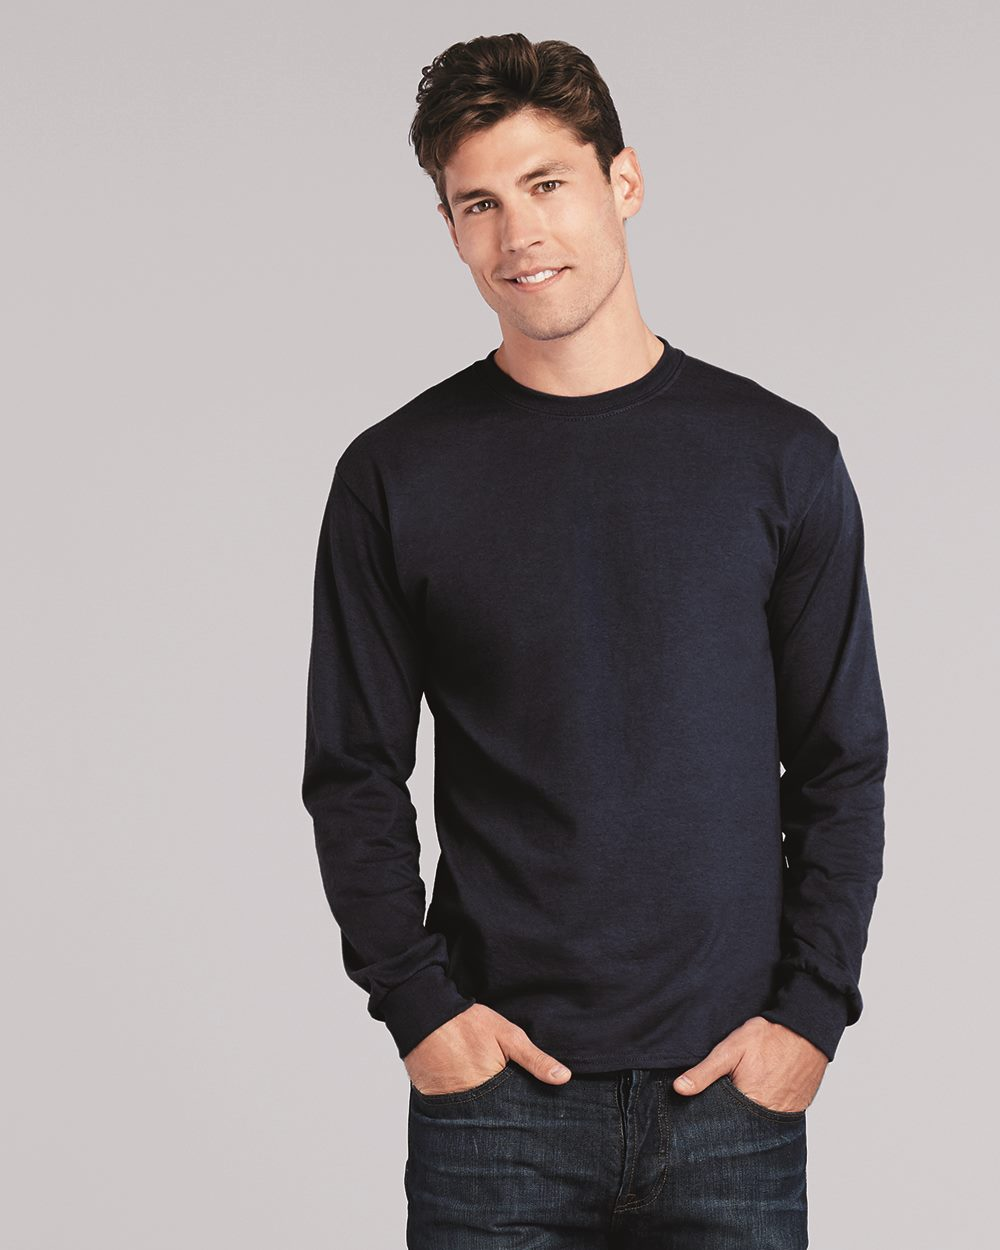 Gildan 8400-DryBlend 50/50 Long Sleeve T-Shirt